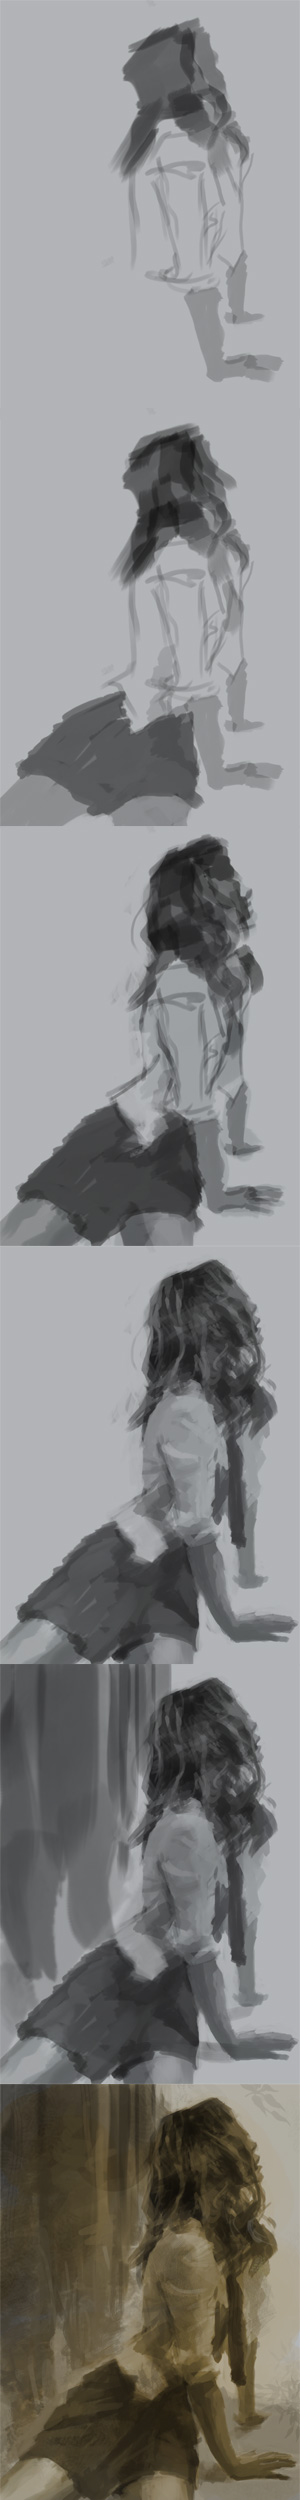 tonal values study painting instruction